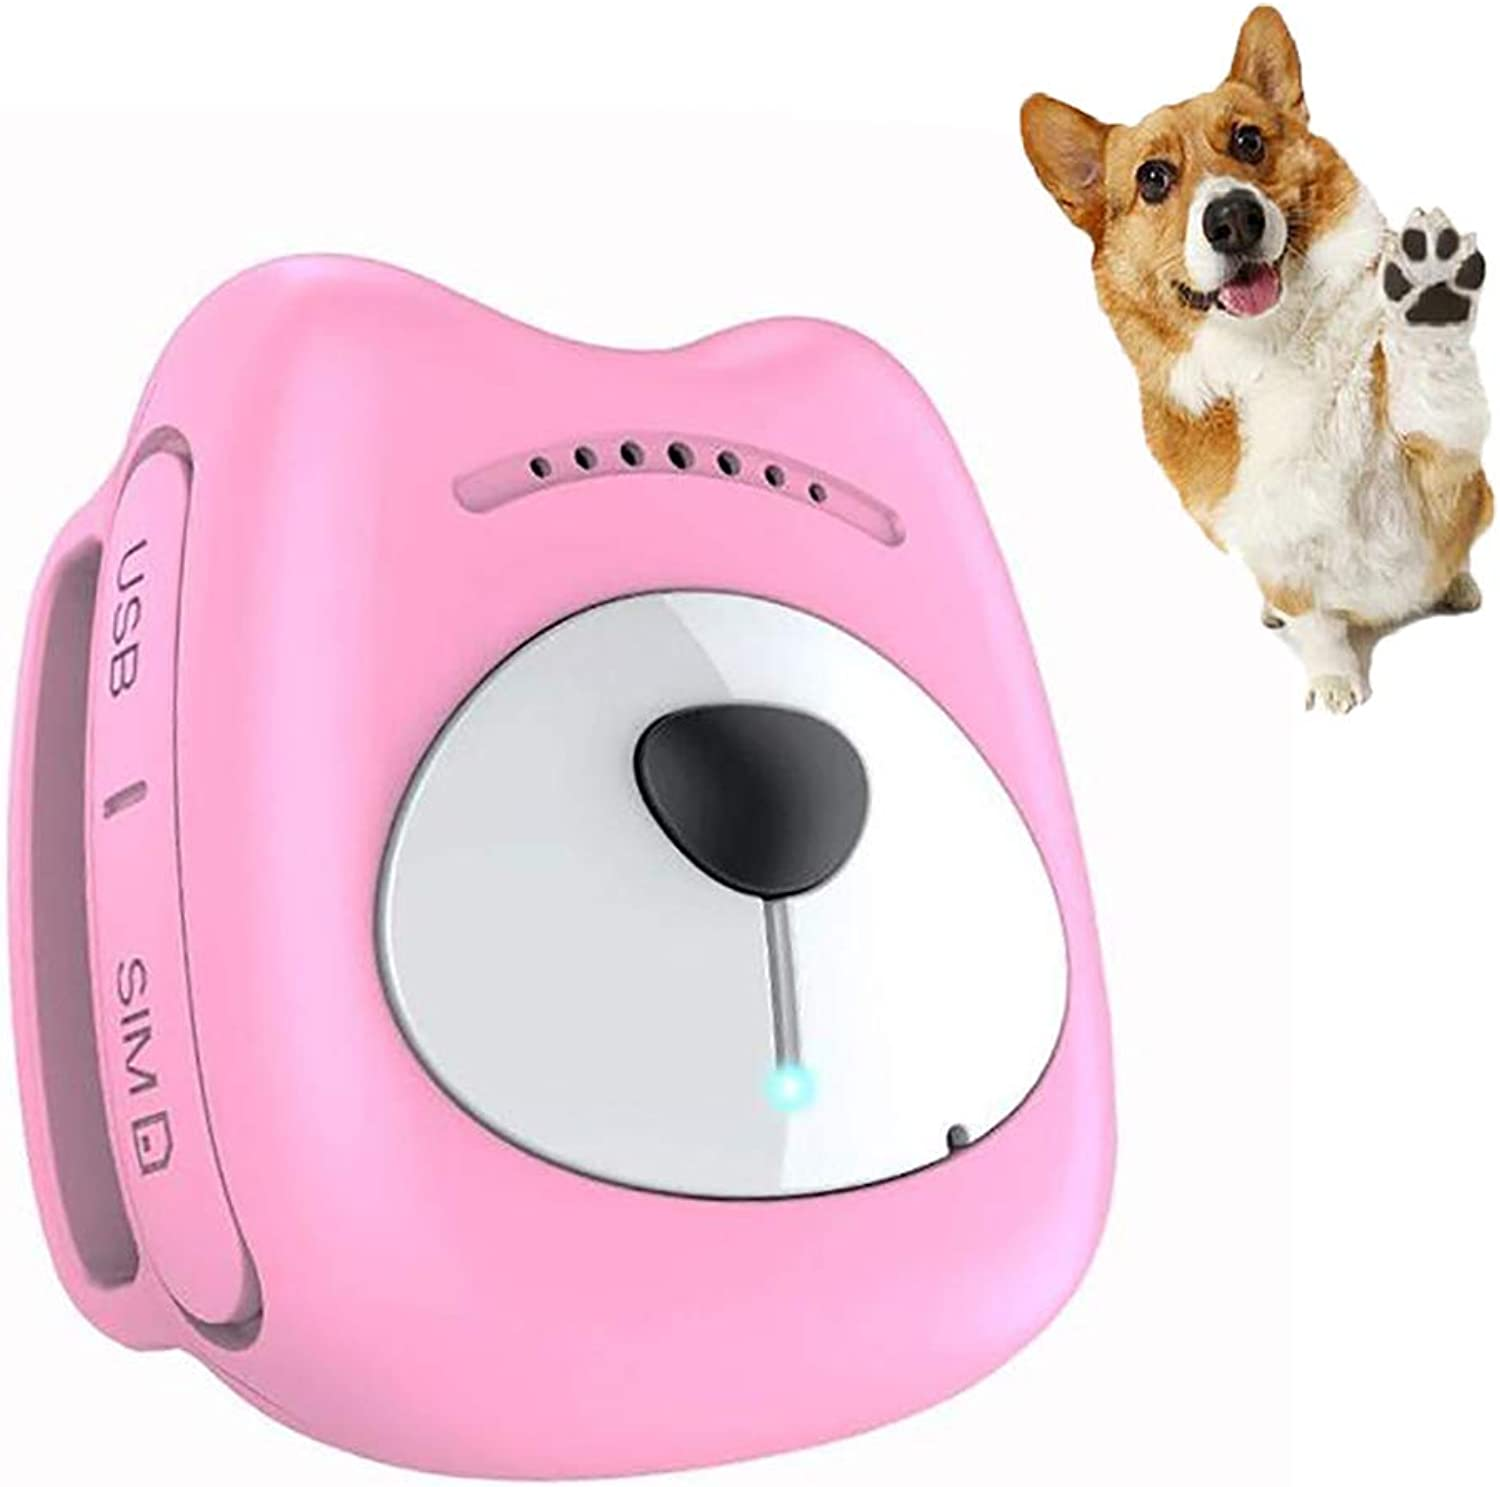 FXQIN Waterproof Cats Dogs GPS Tracker, Real Time Pet Locator, Unlimited Range & Geofence & AntiLost Dogs Collar, Rechargeable (Pink)